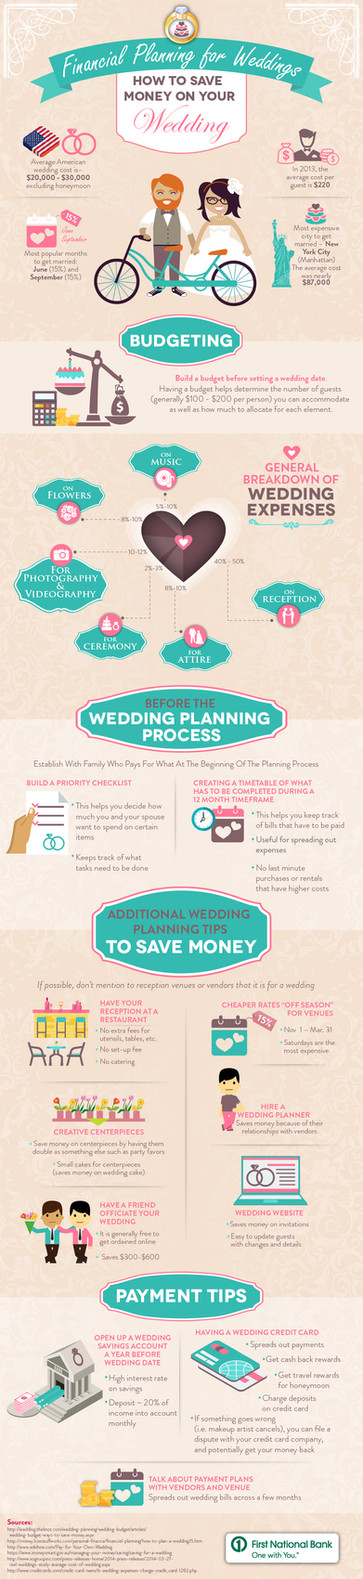 Financial Planning For Weddings